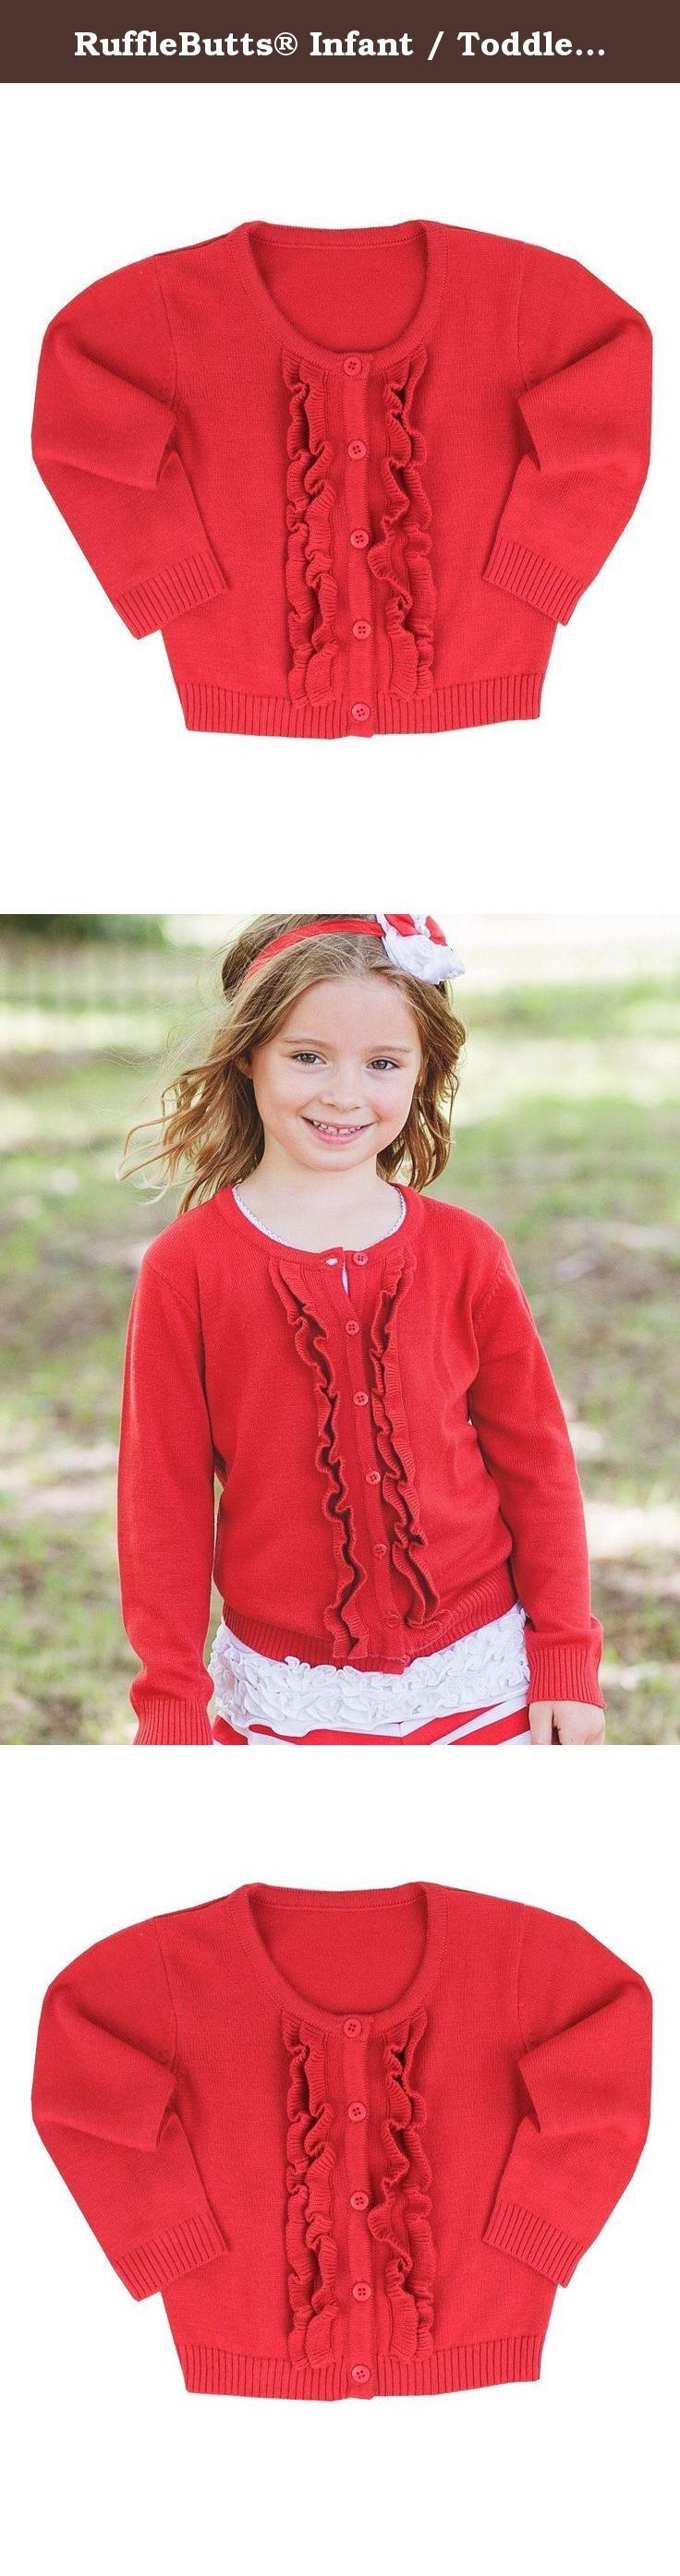 RuffleButts® Infant / Toddler Girls Ruffled Long Sleeve Cardigan - Red - 6-12m. The perfect addition to any outfit, this Cardigan is one she will love. With an ultra comfy fit, this a piece she will stay cuddly in all day long.